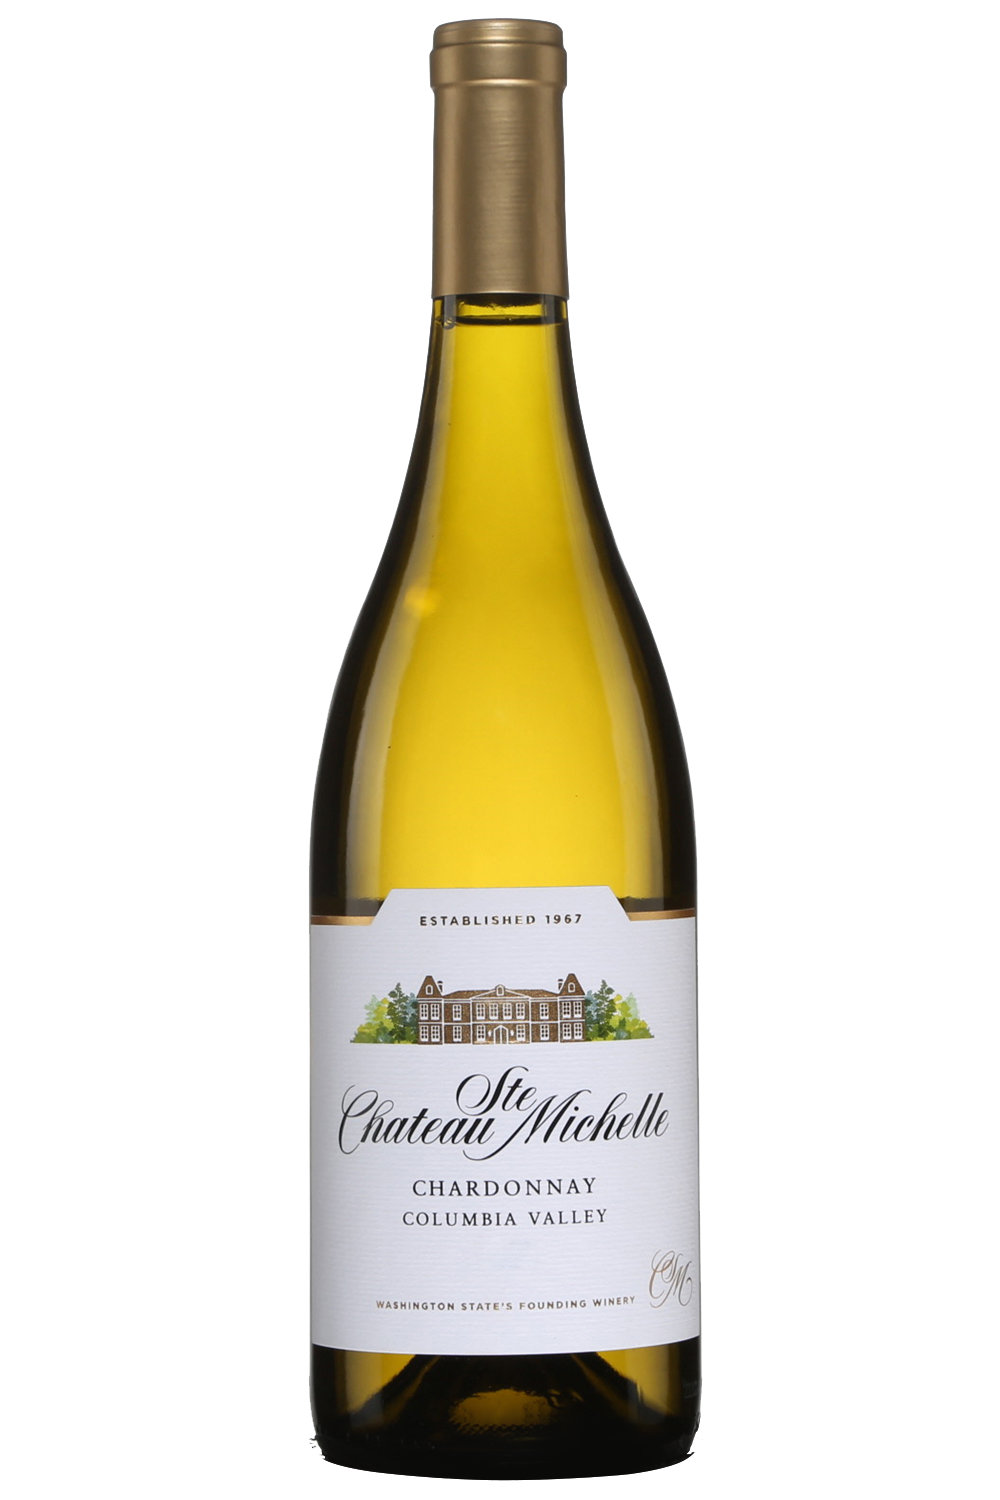 Chateau Ste Michelle Chardonnay Columbia Valley 2018